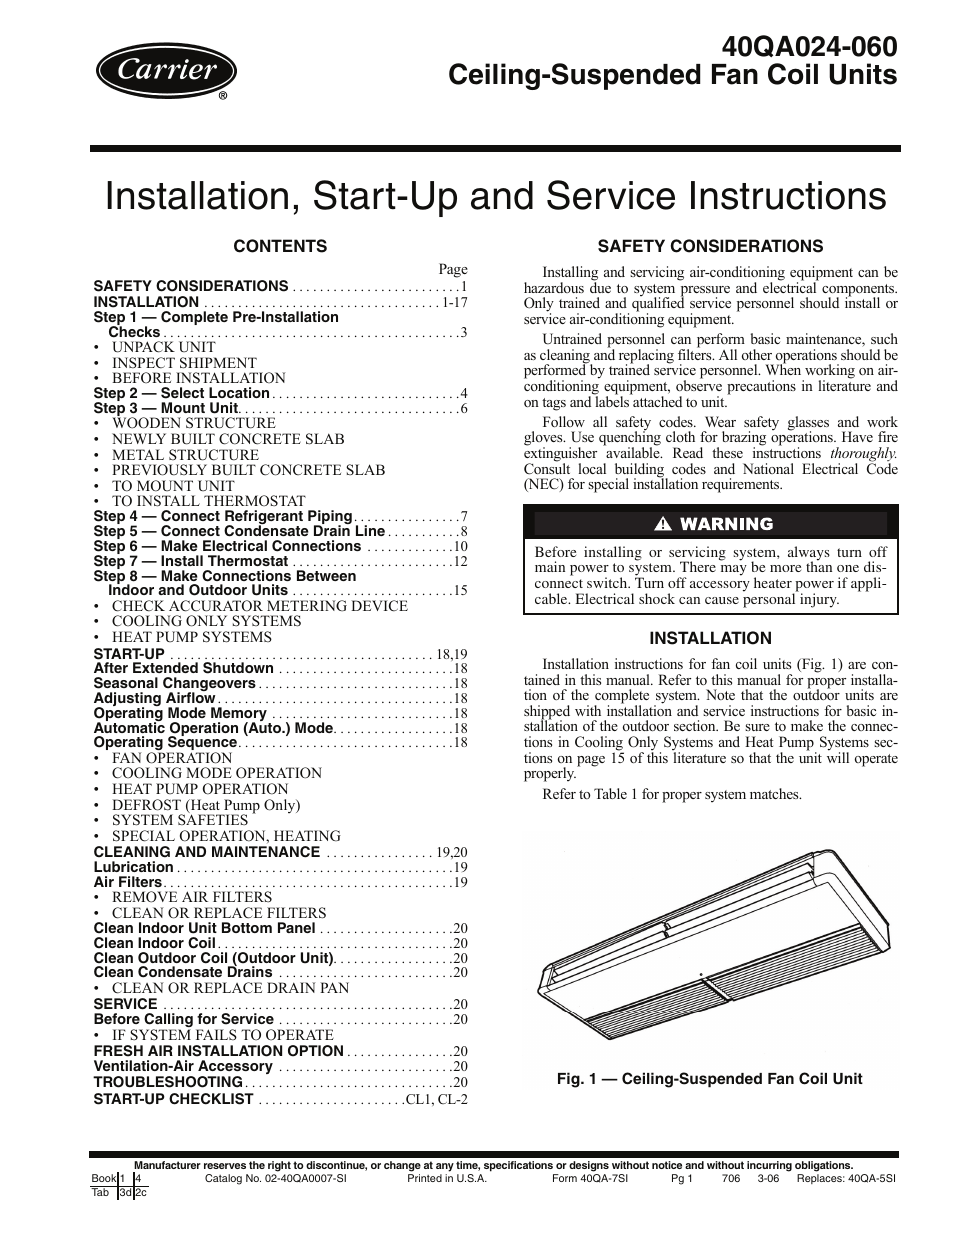 Carrier 40QA024-060 User Manual | 24 pages